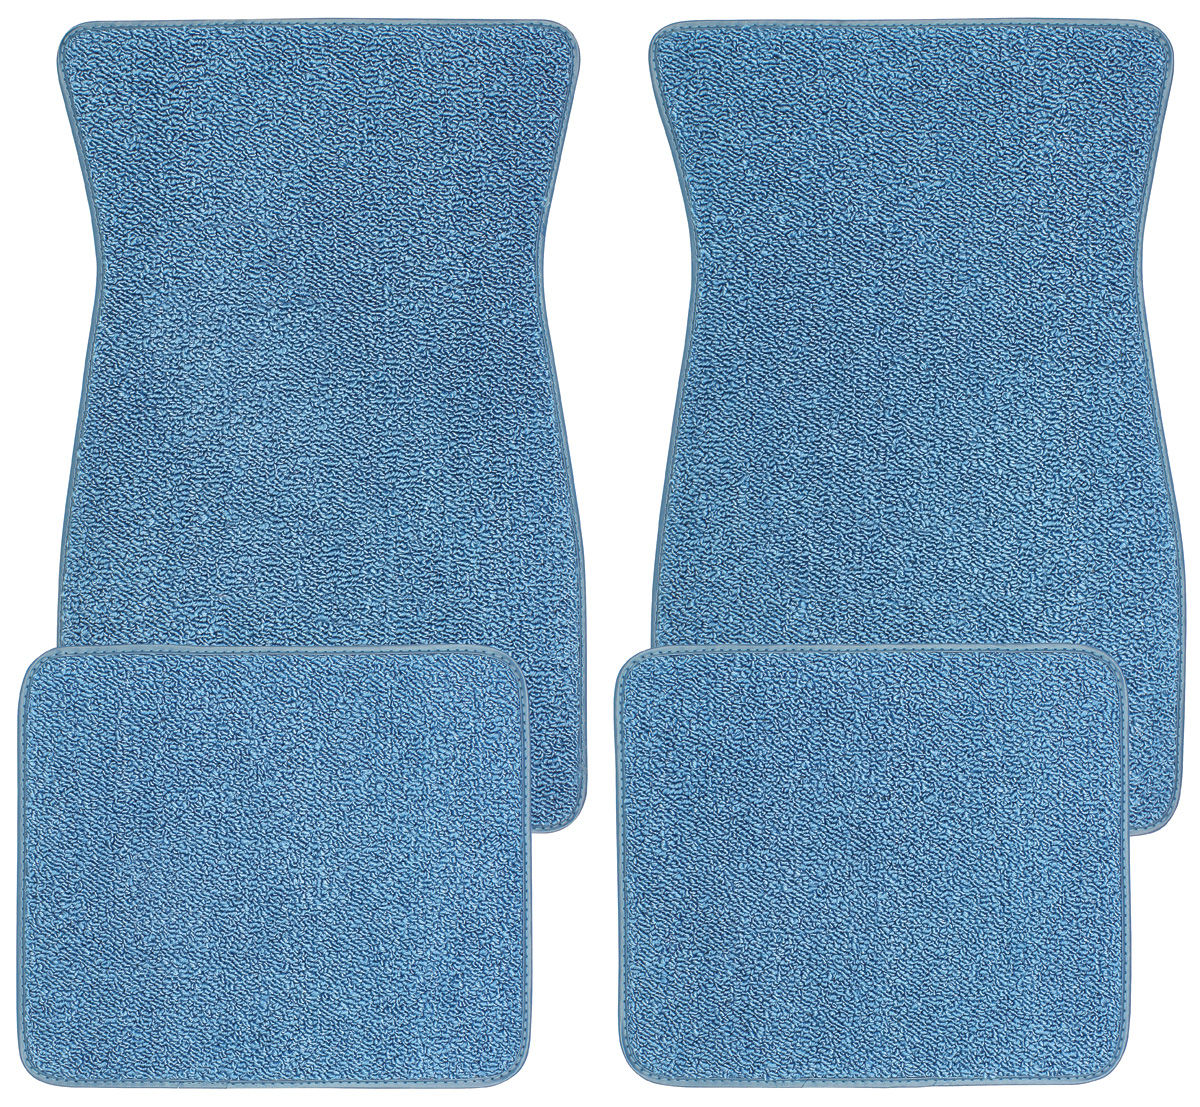 "Photo of Floor Mats, Carpet Matched Oem Style ""Skylark""script"